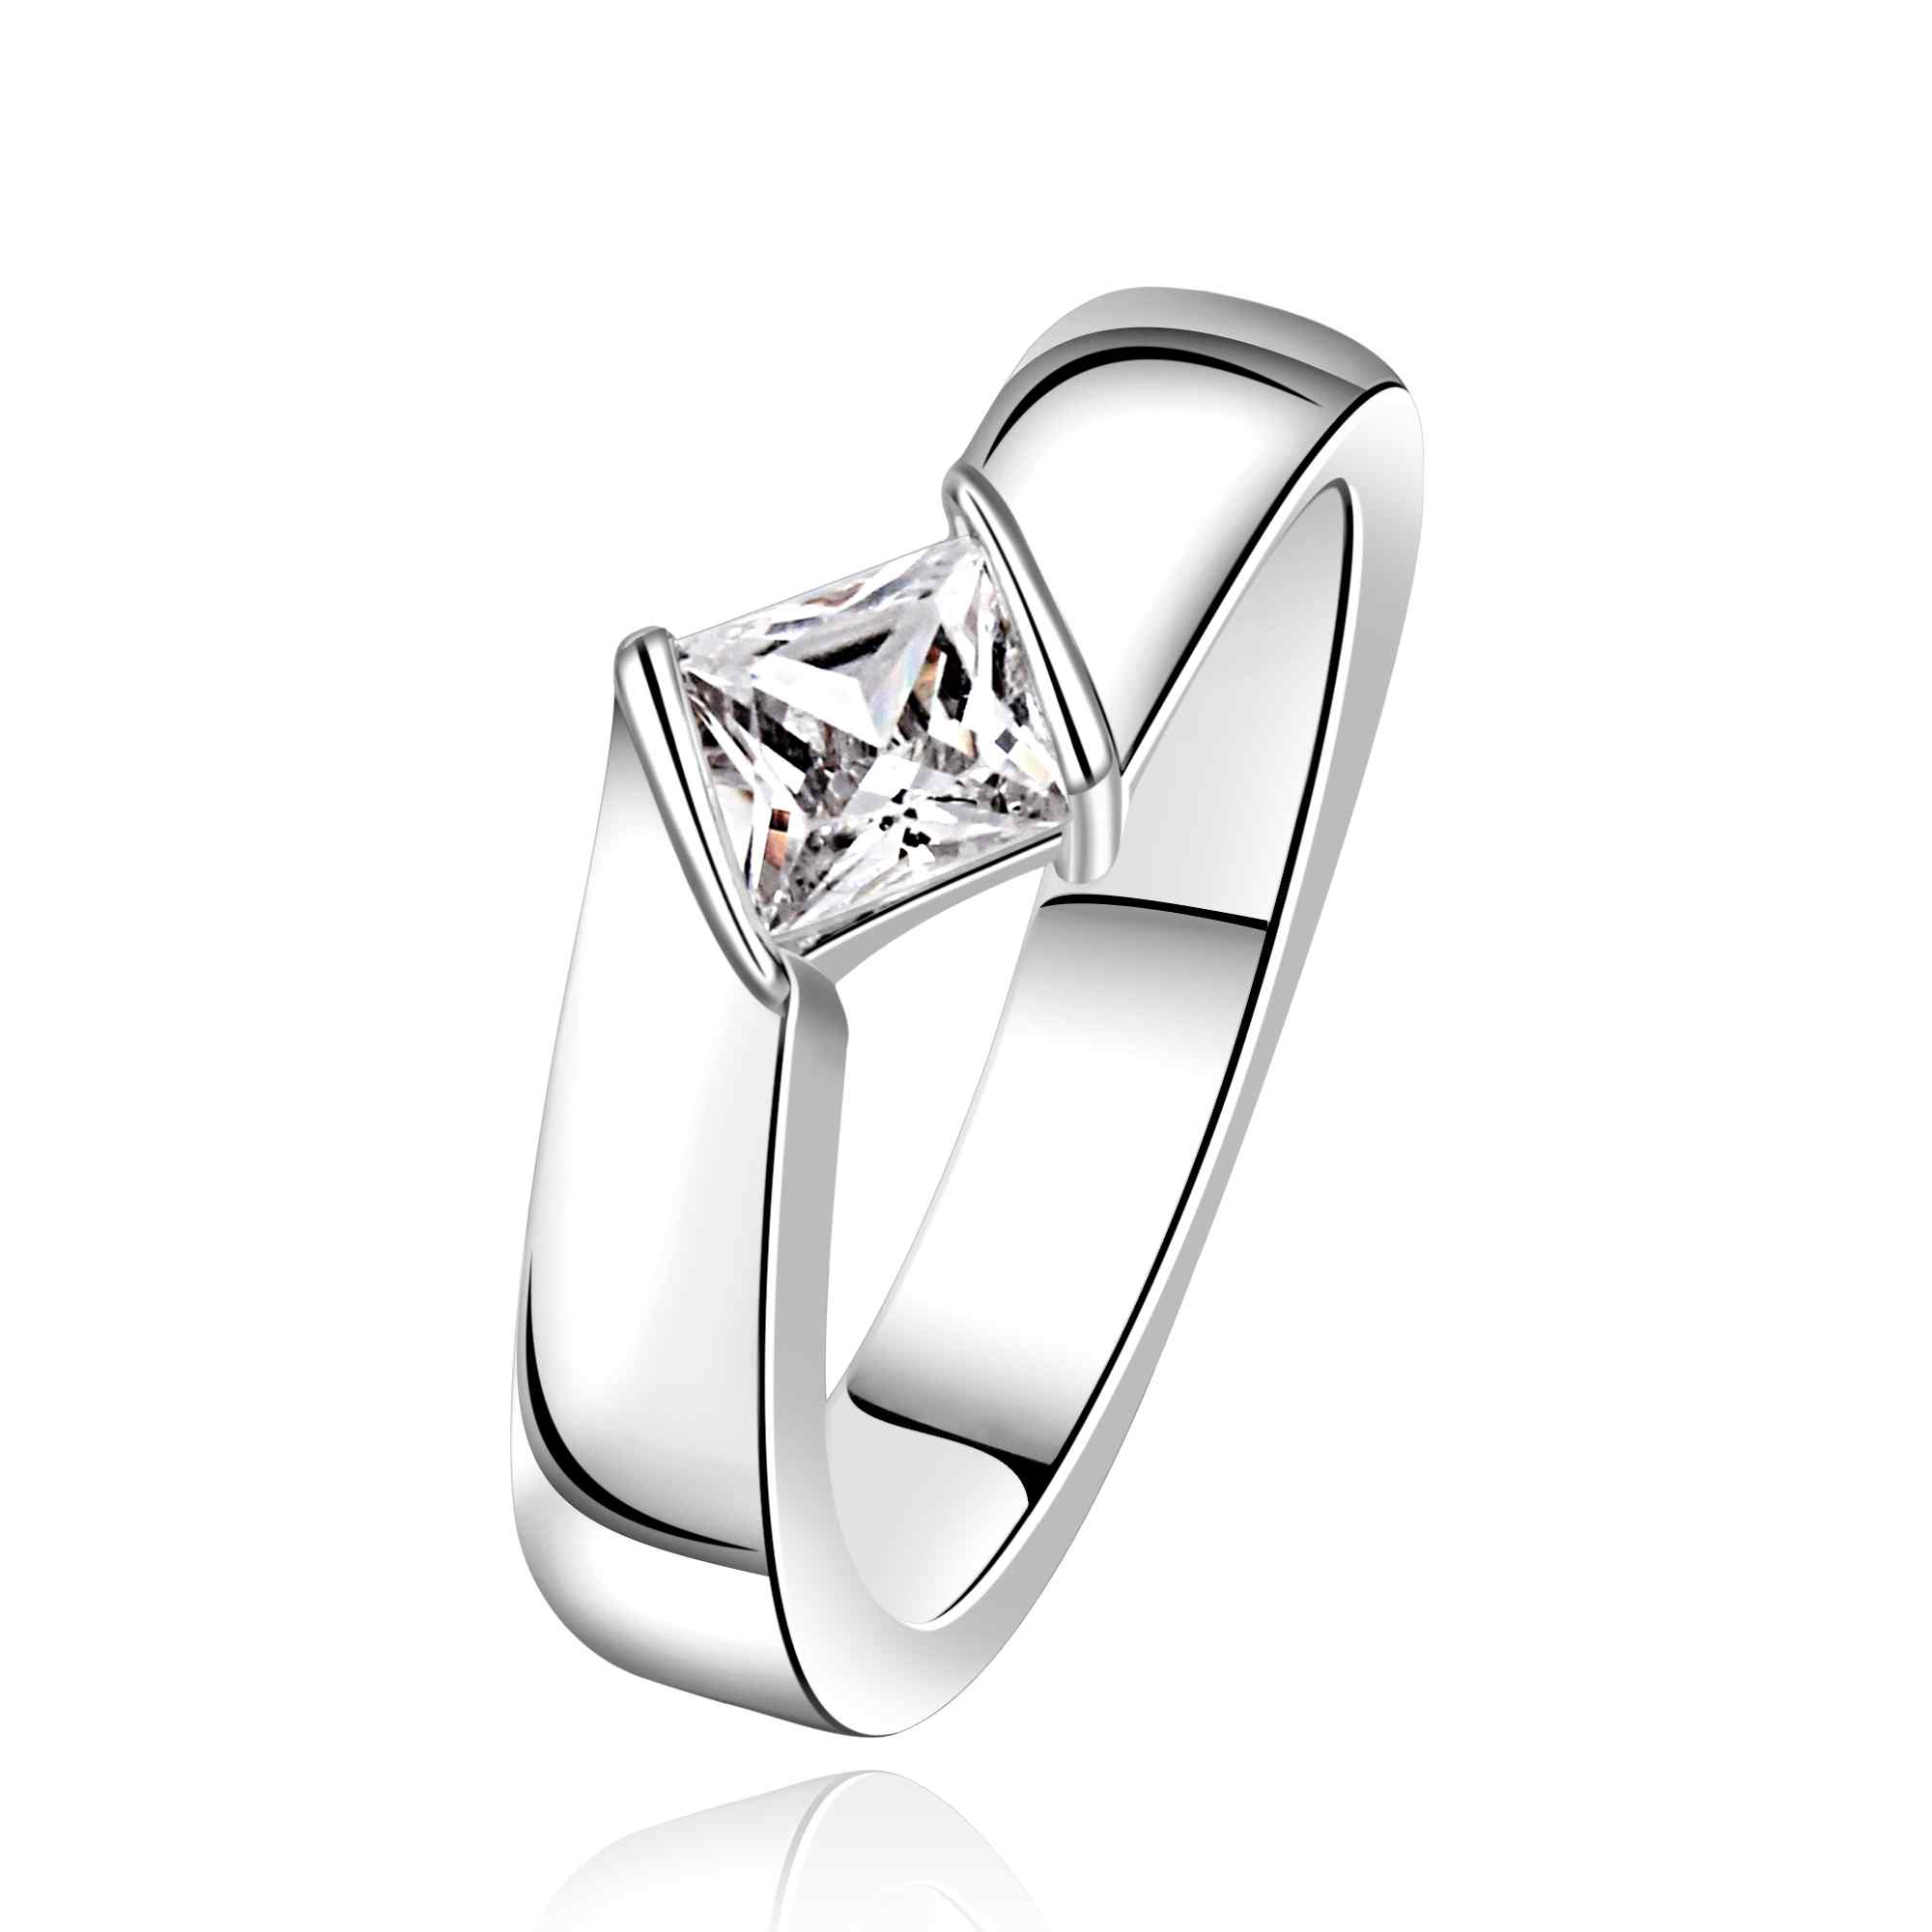 design a wedding ring online for free rings design lovely your own